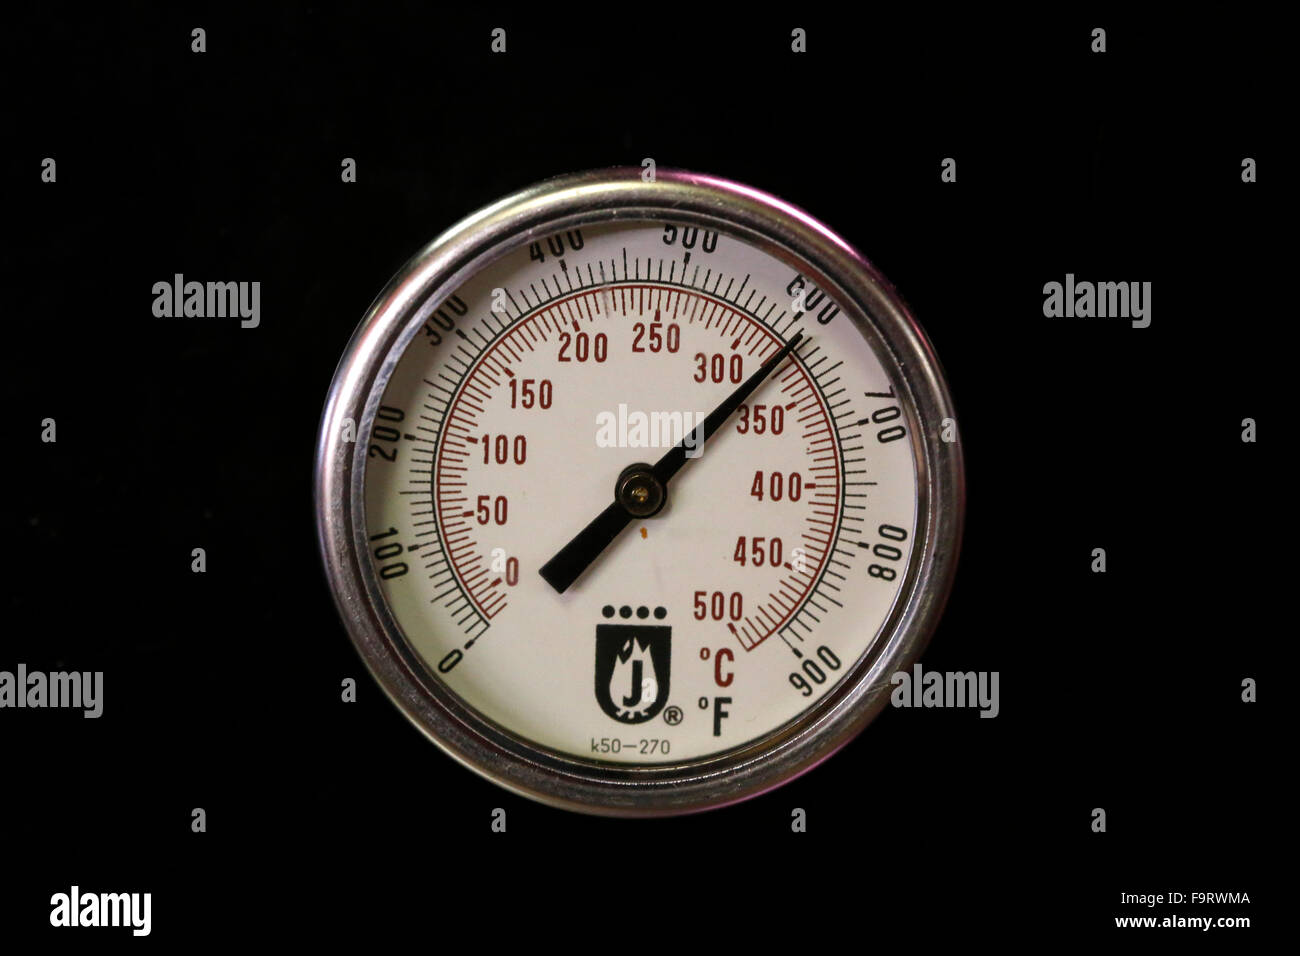 Oven thermometer. - Stock Image